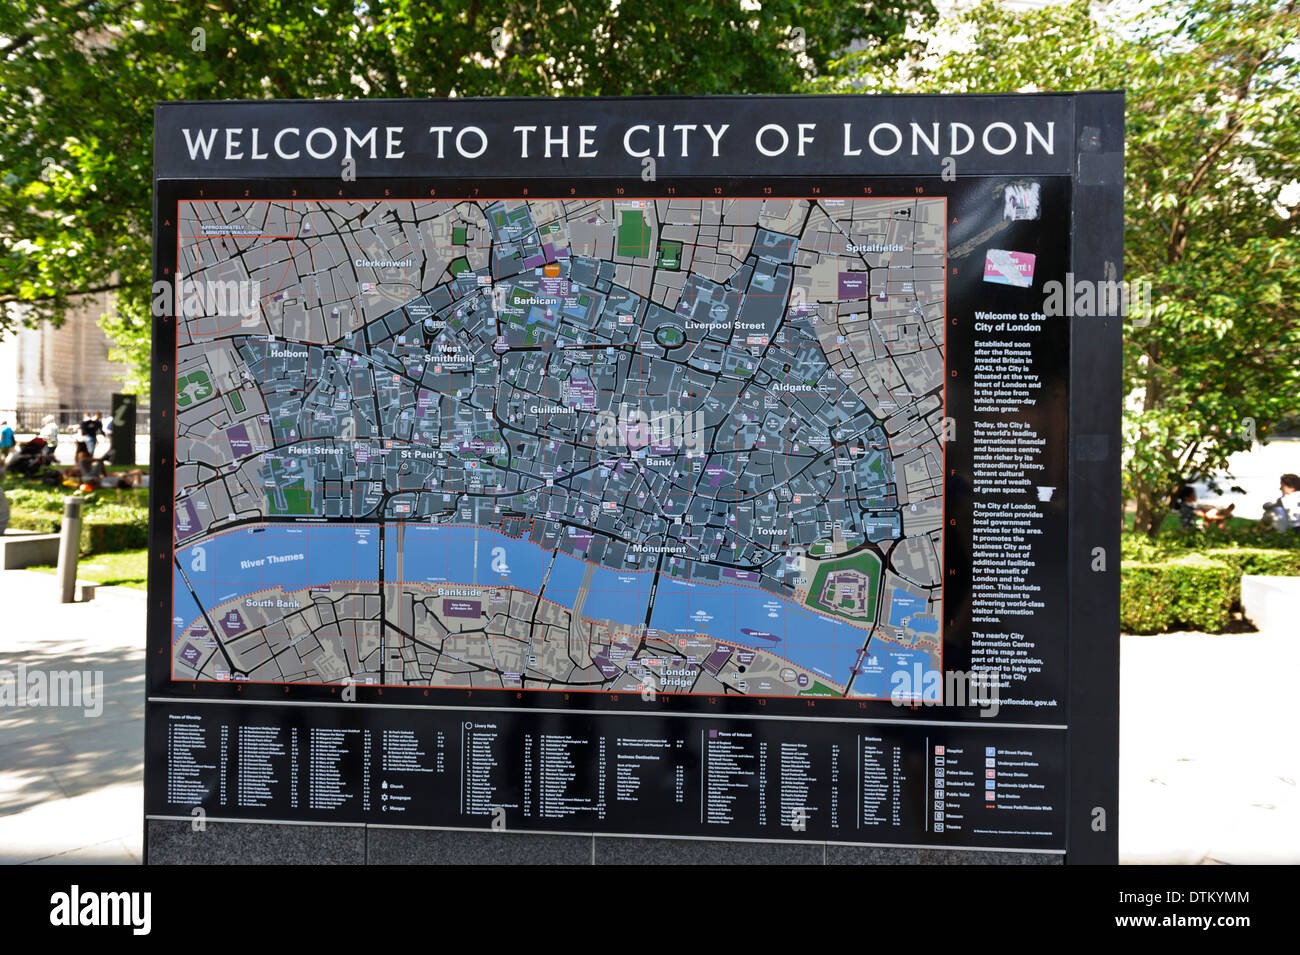 Map of city of london on display london england united kingdom map of city of london on display london england united kingdom gumiabroncs Gallery